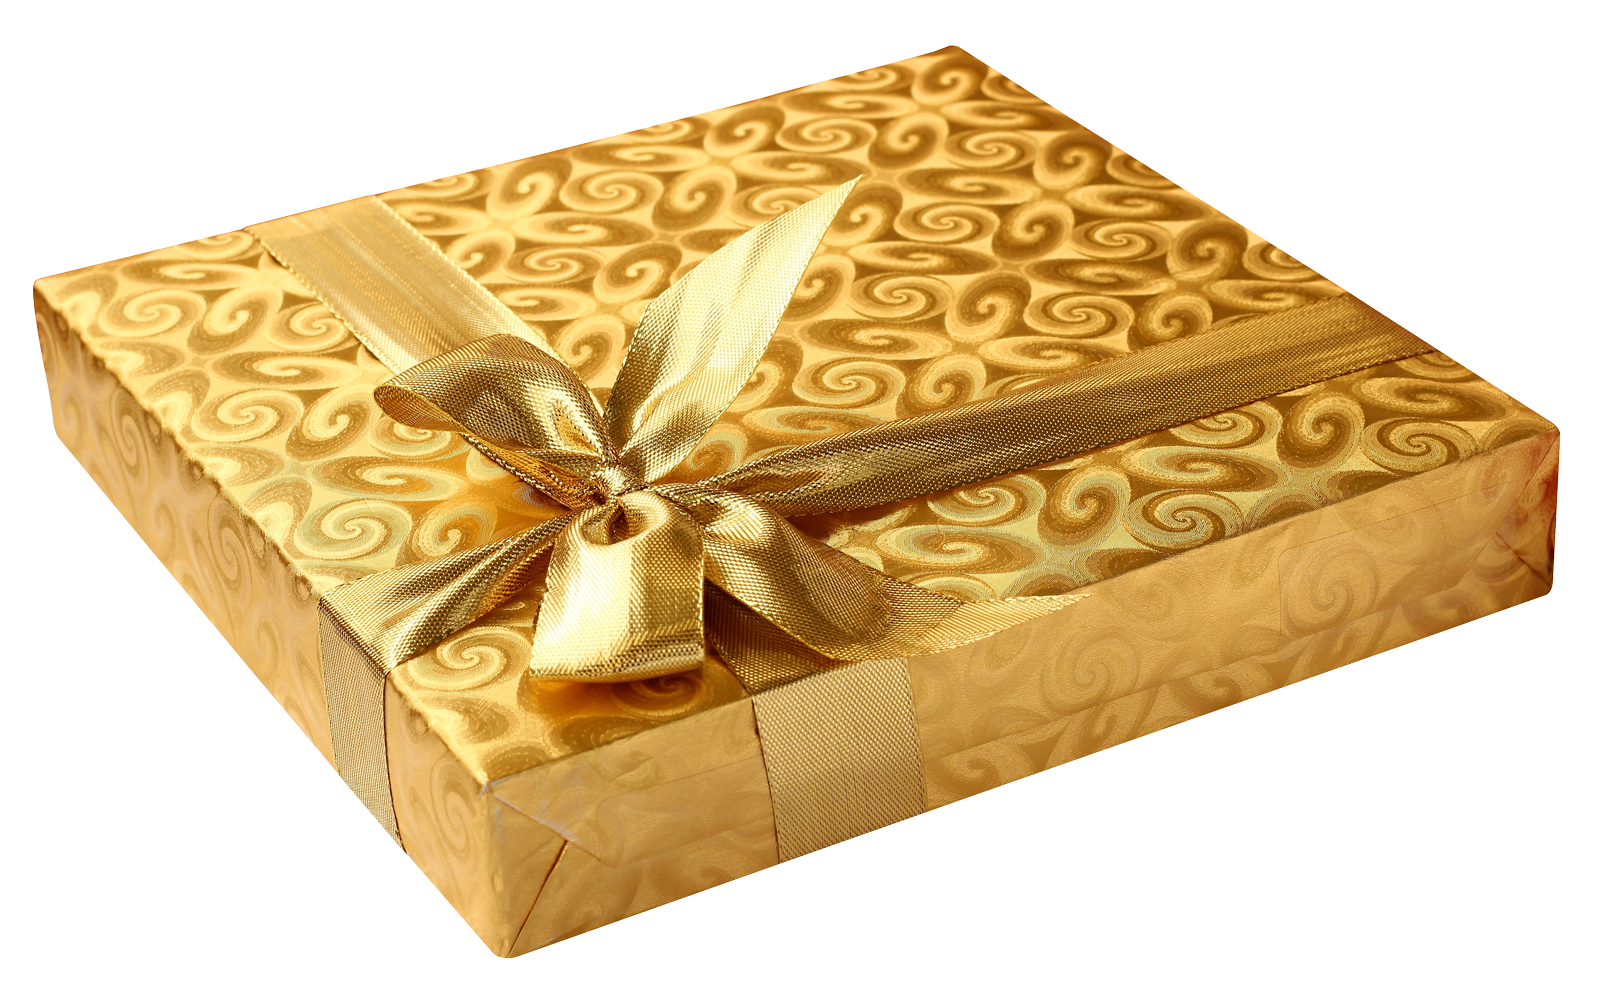 Golden Birthday Gift PNG Image.